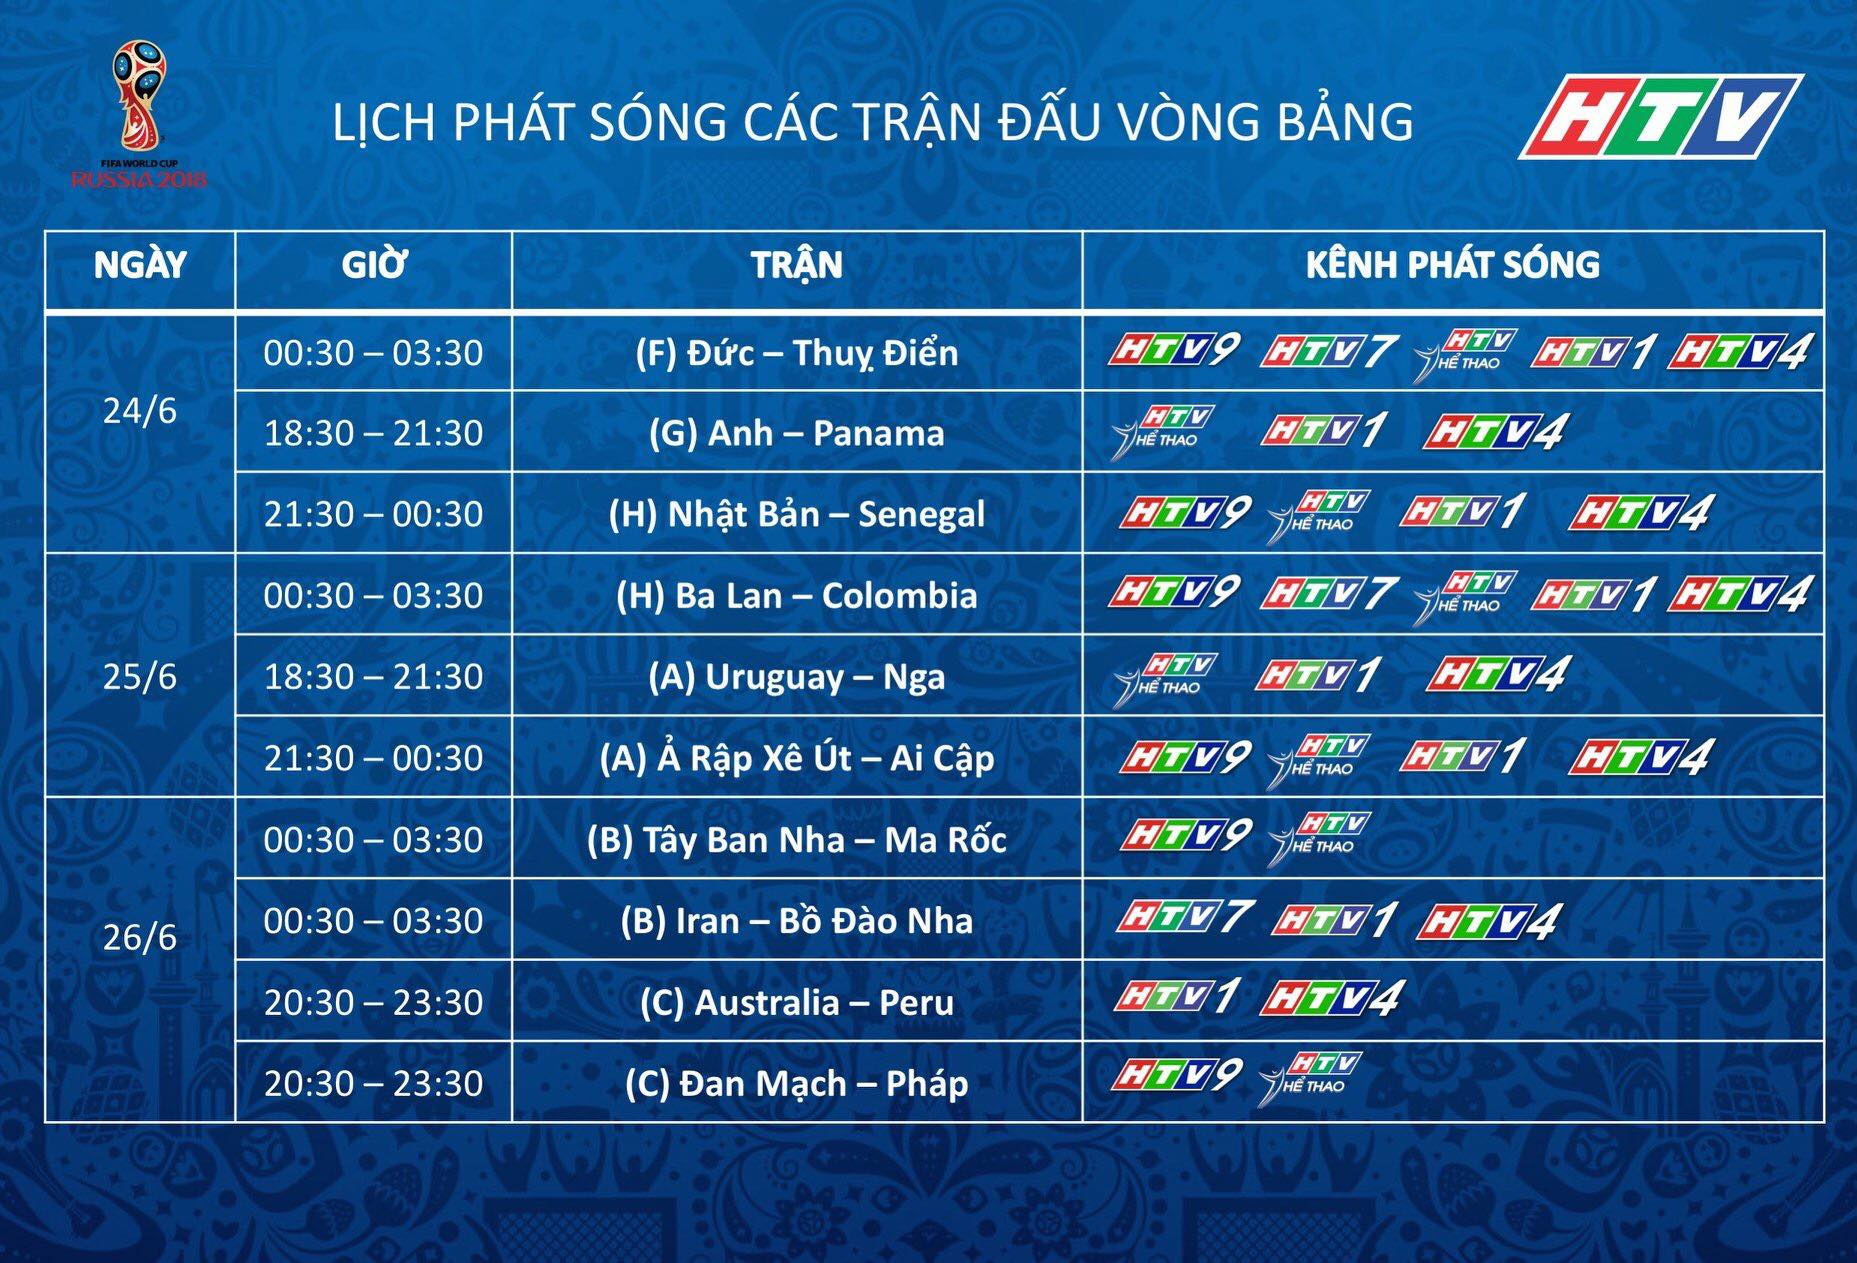 LICH PHAT SONG WORLD CUP 2018 TREN HTV 3